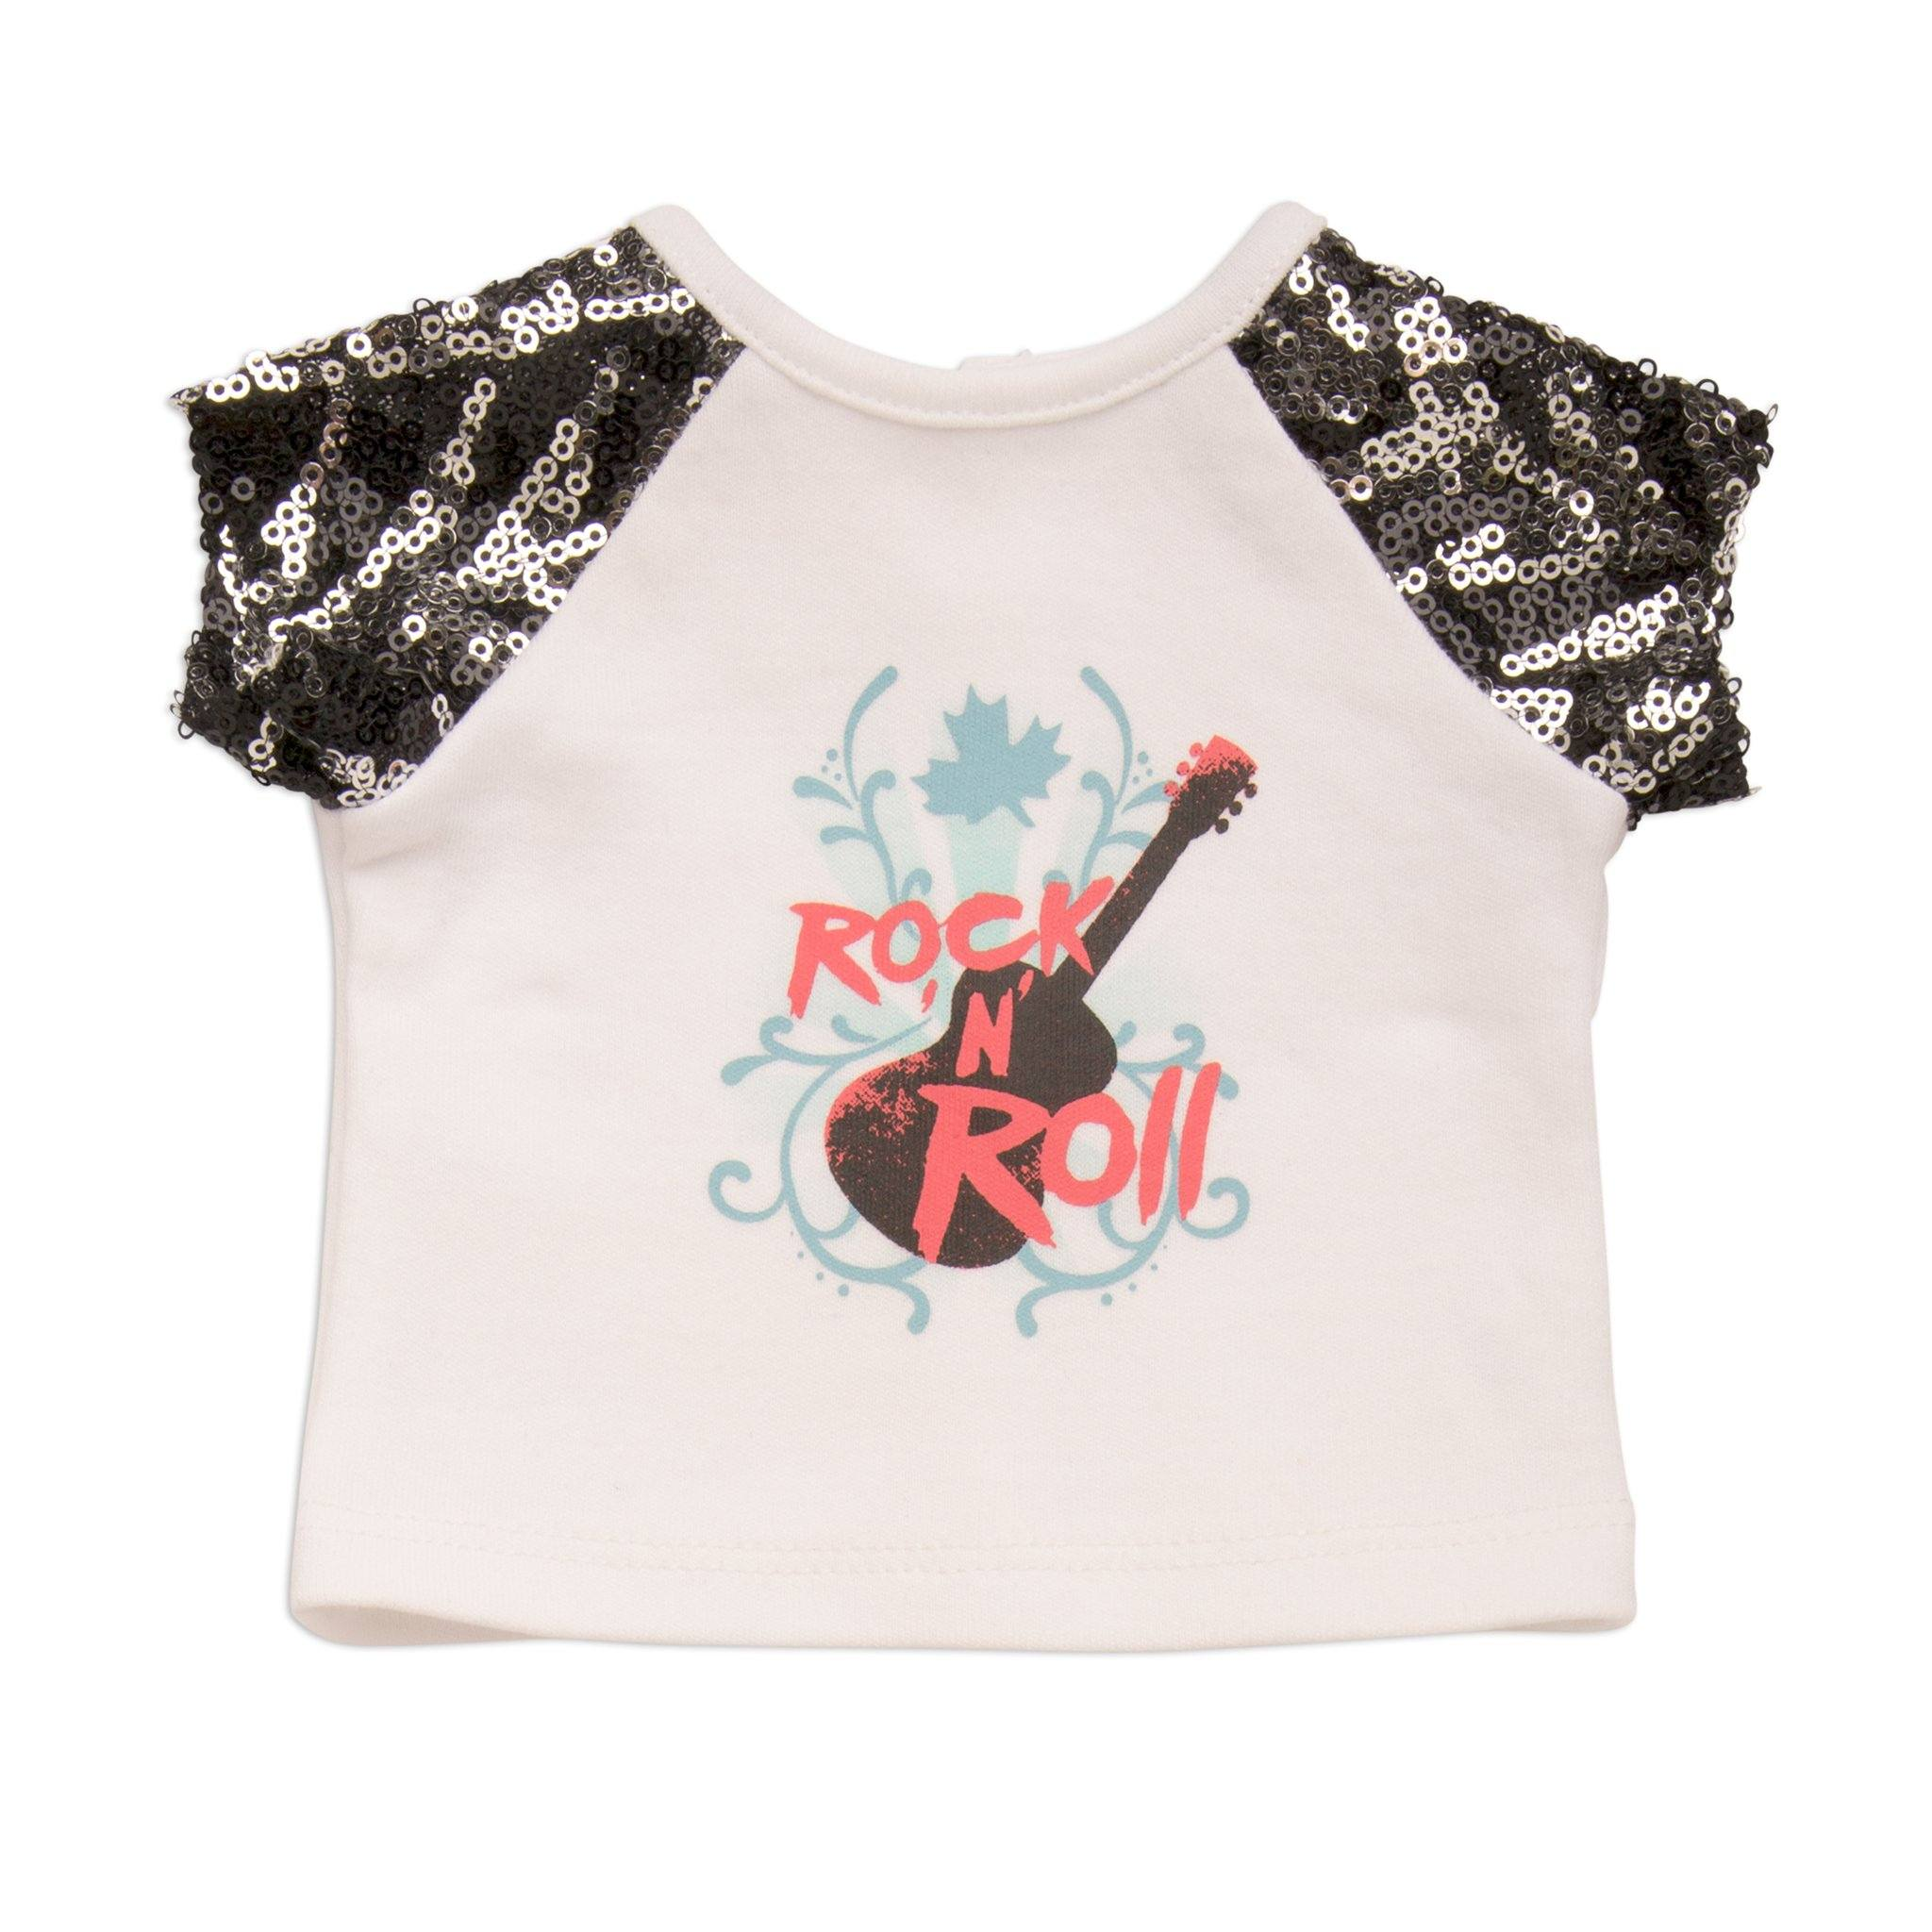 white rock n' roll graphic t-shirt with sequin sleeves, and button wrist band fits all 18 inch dolls.